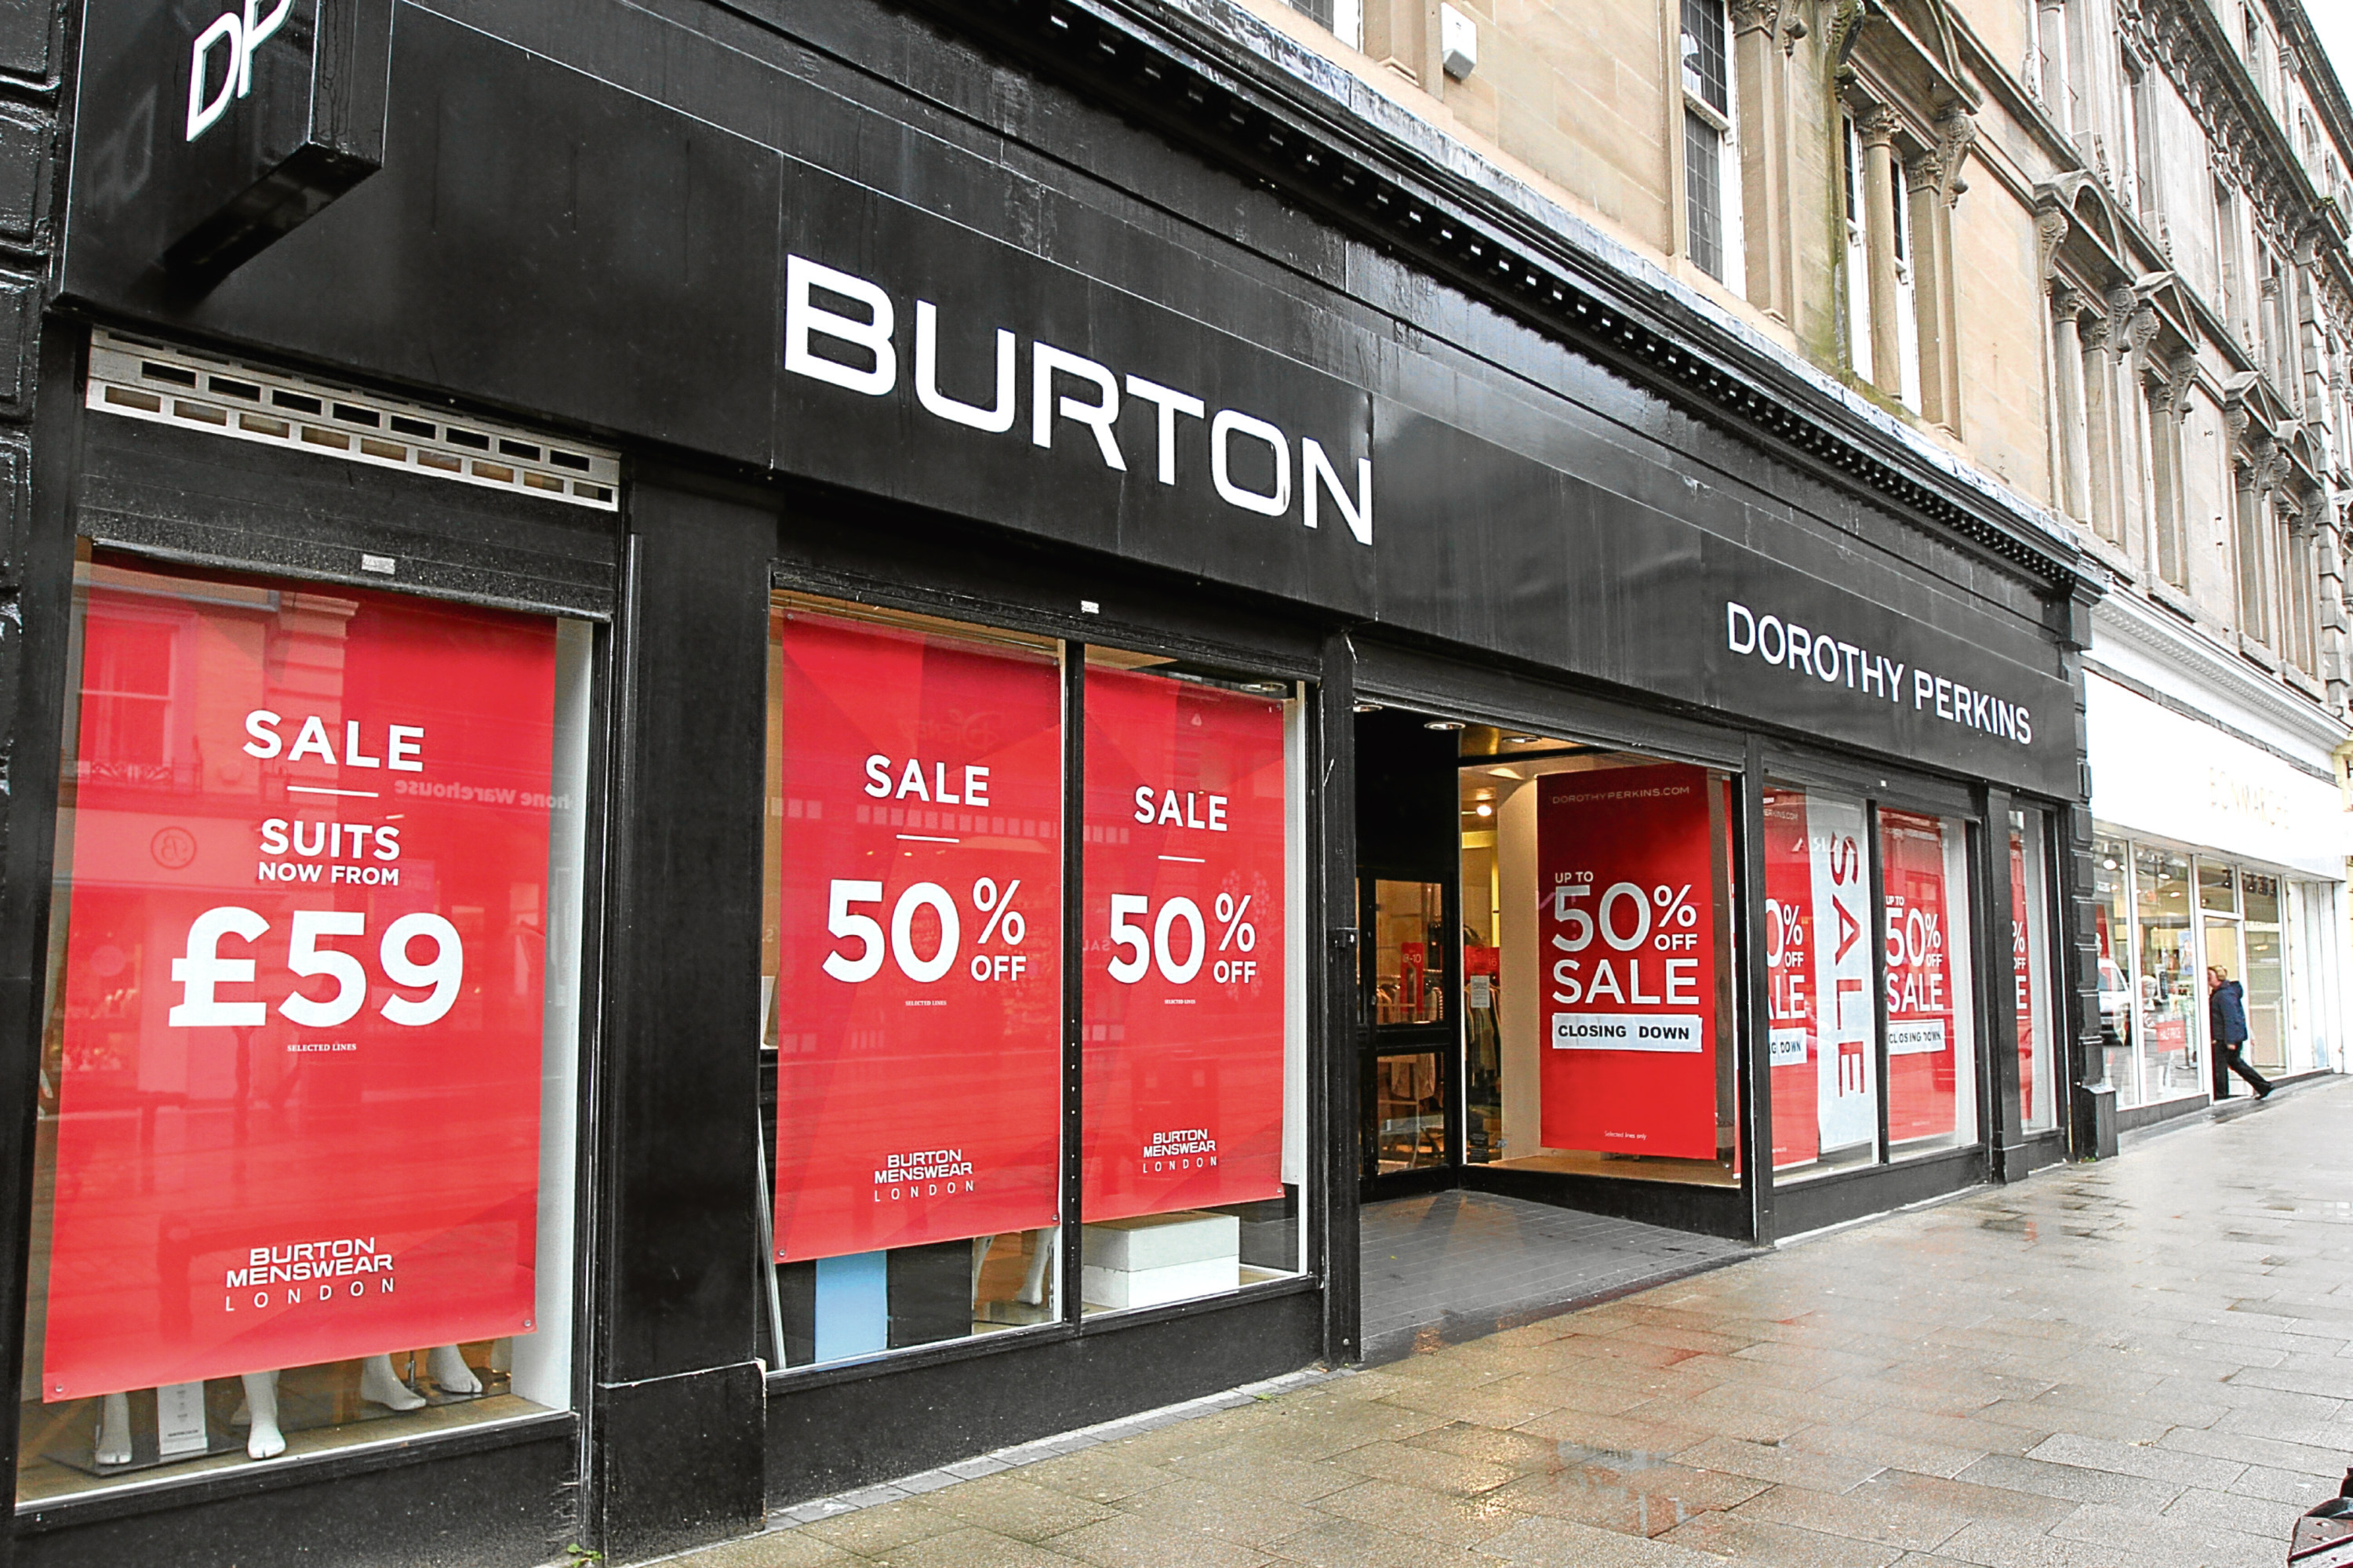 The Burton and Dorothy Perkins stores in the Murraygate.